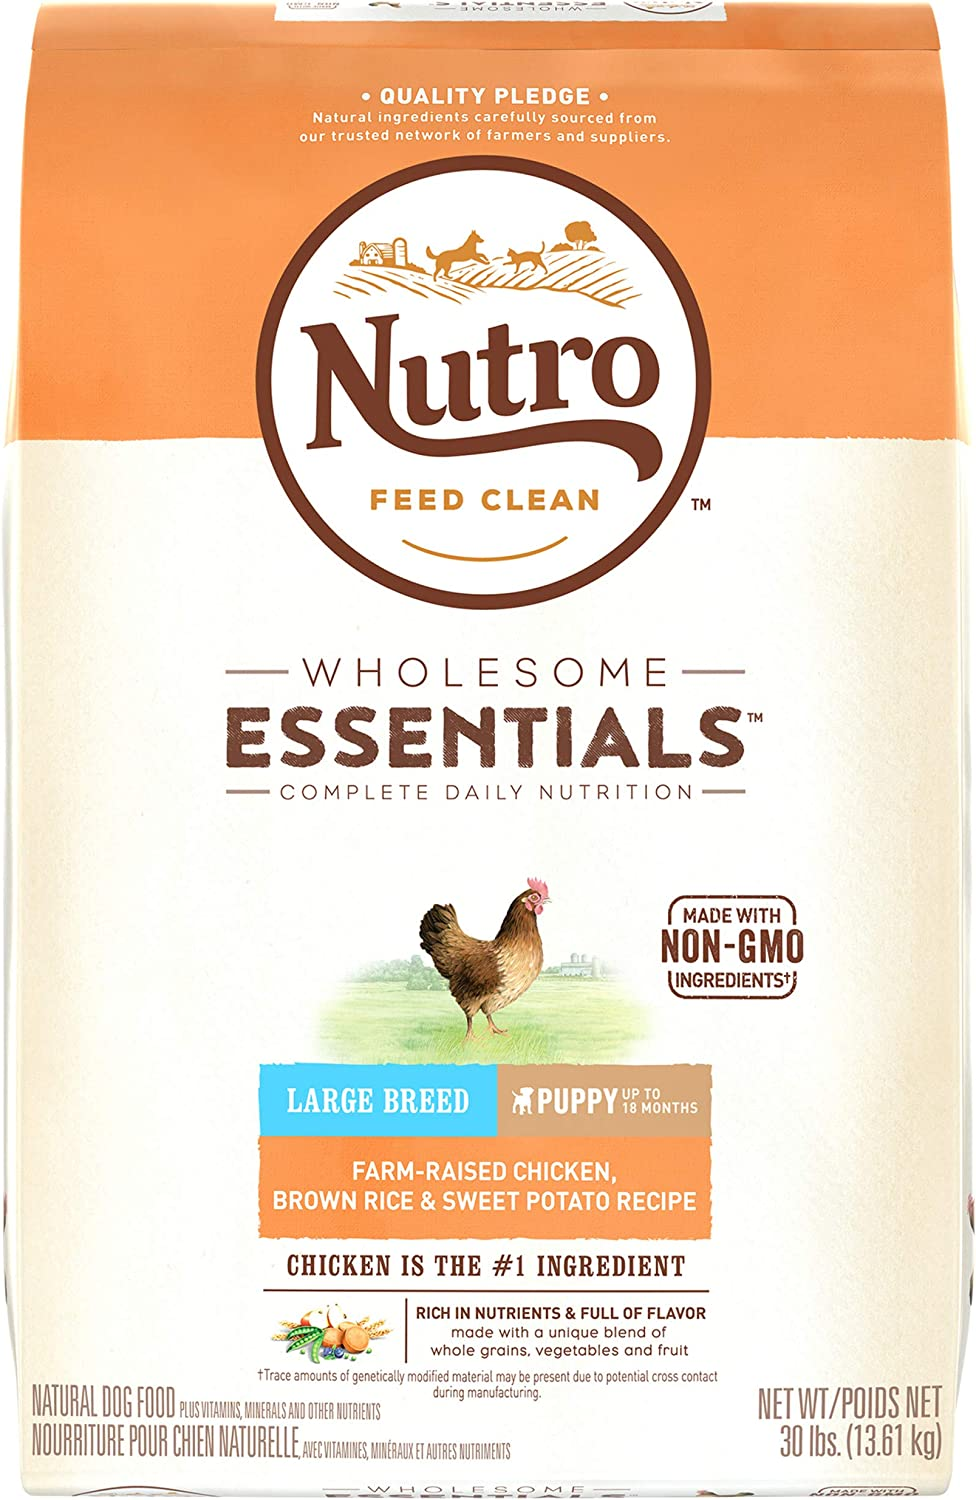 2. Nutro Wholesome Essentials Large Breed Puppy Dry Dog Food